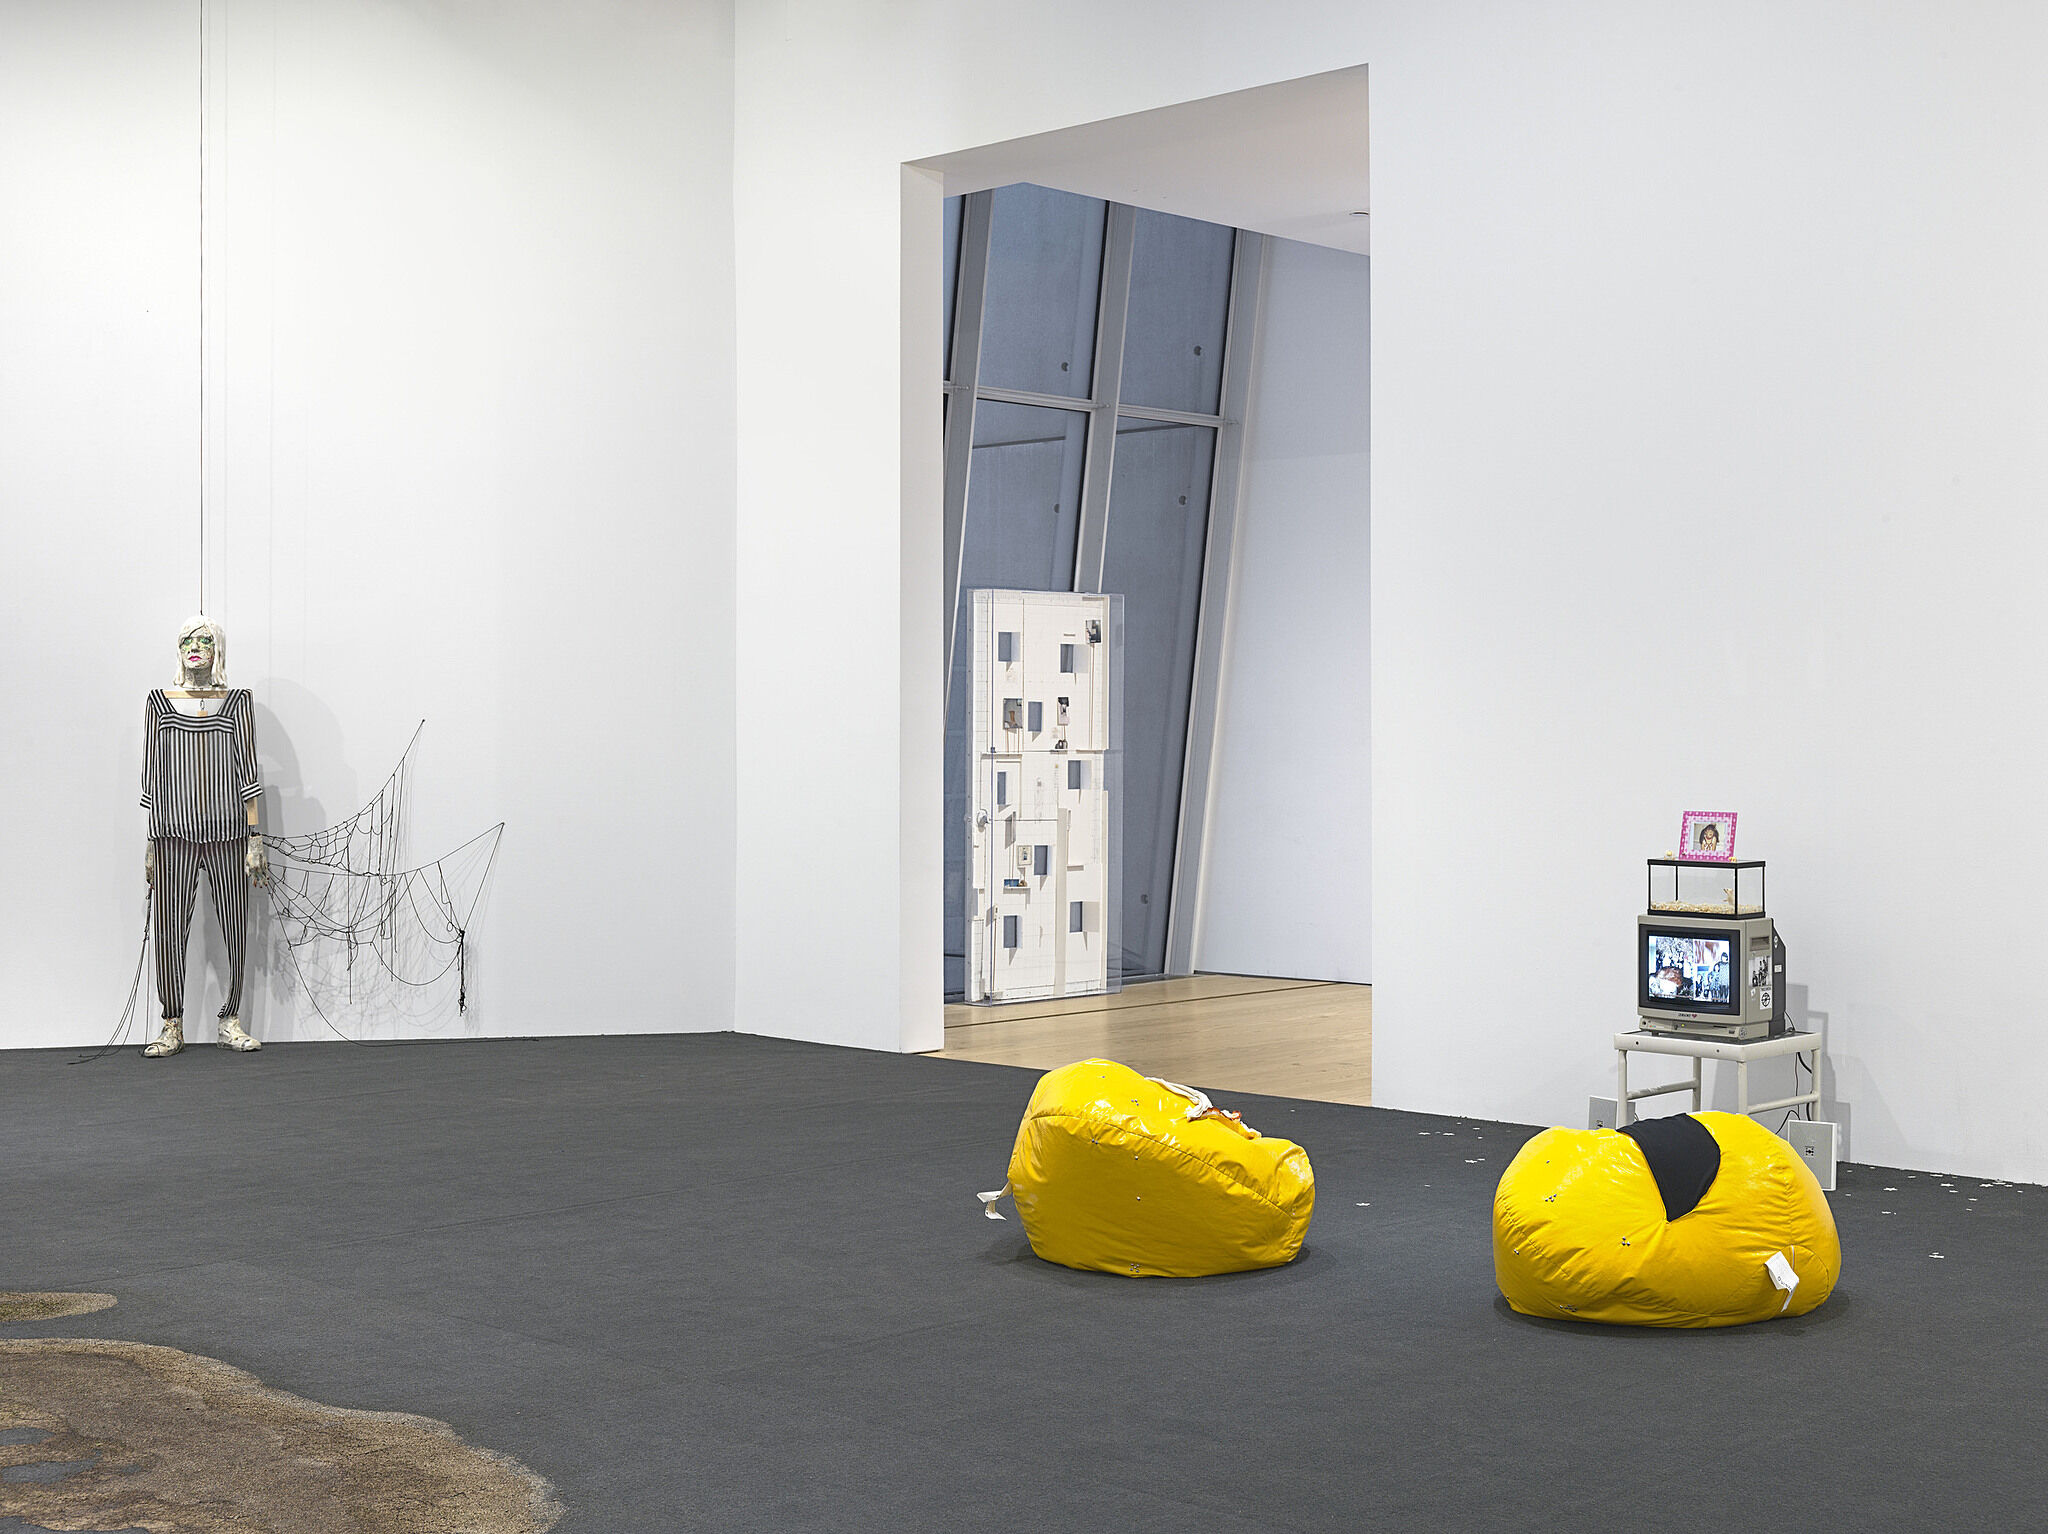 Yellow beanbag chairs sit on the ground with installation surrounding it.